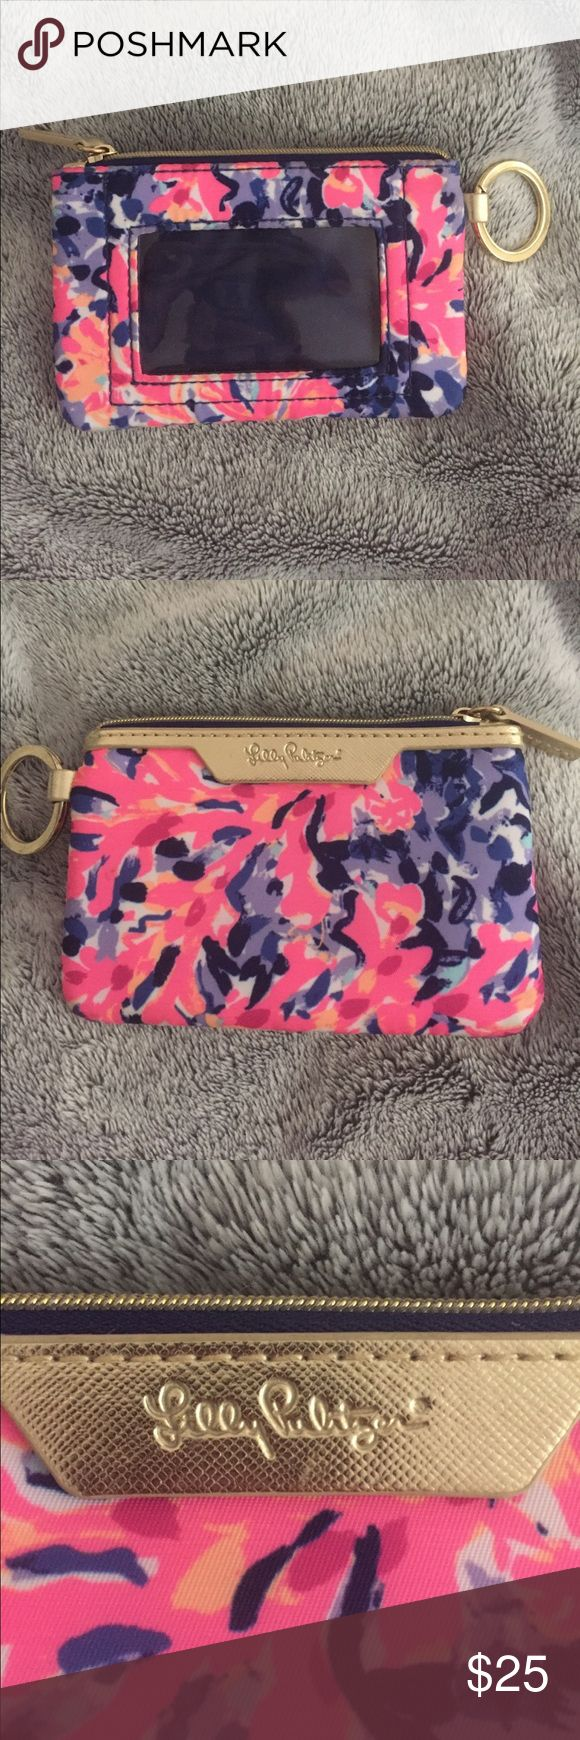 Lilly Pulitzer ID case/wallet ✨🎉Small Lilly ID case in need of a new home! Great for taking in a small over the shoulder purse! used for a short period of time. In great used condition, no rips or tears in the fabric, zip works perfectly! 🎉✨                    Pattern is Coco Crab! Lilly Pulitzer Bags Wallets